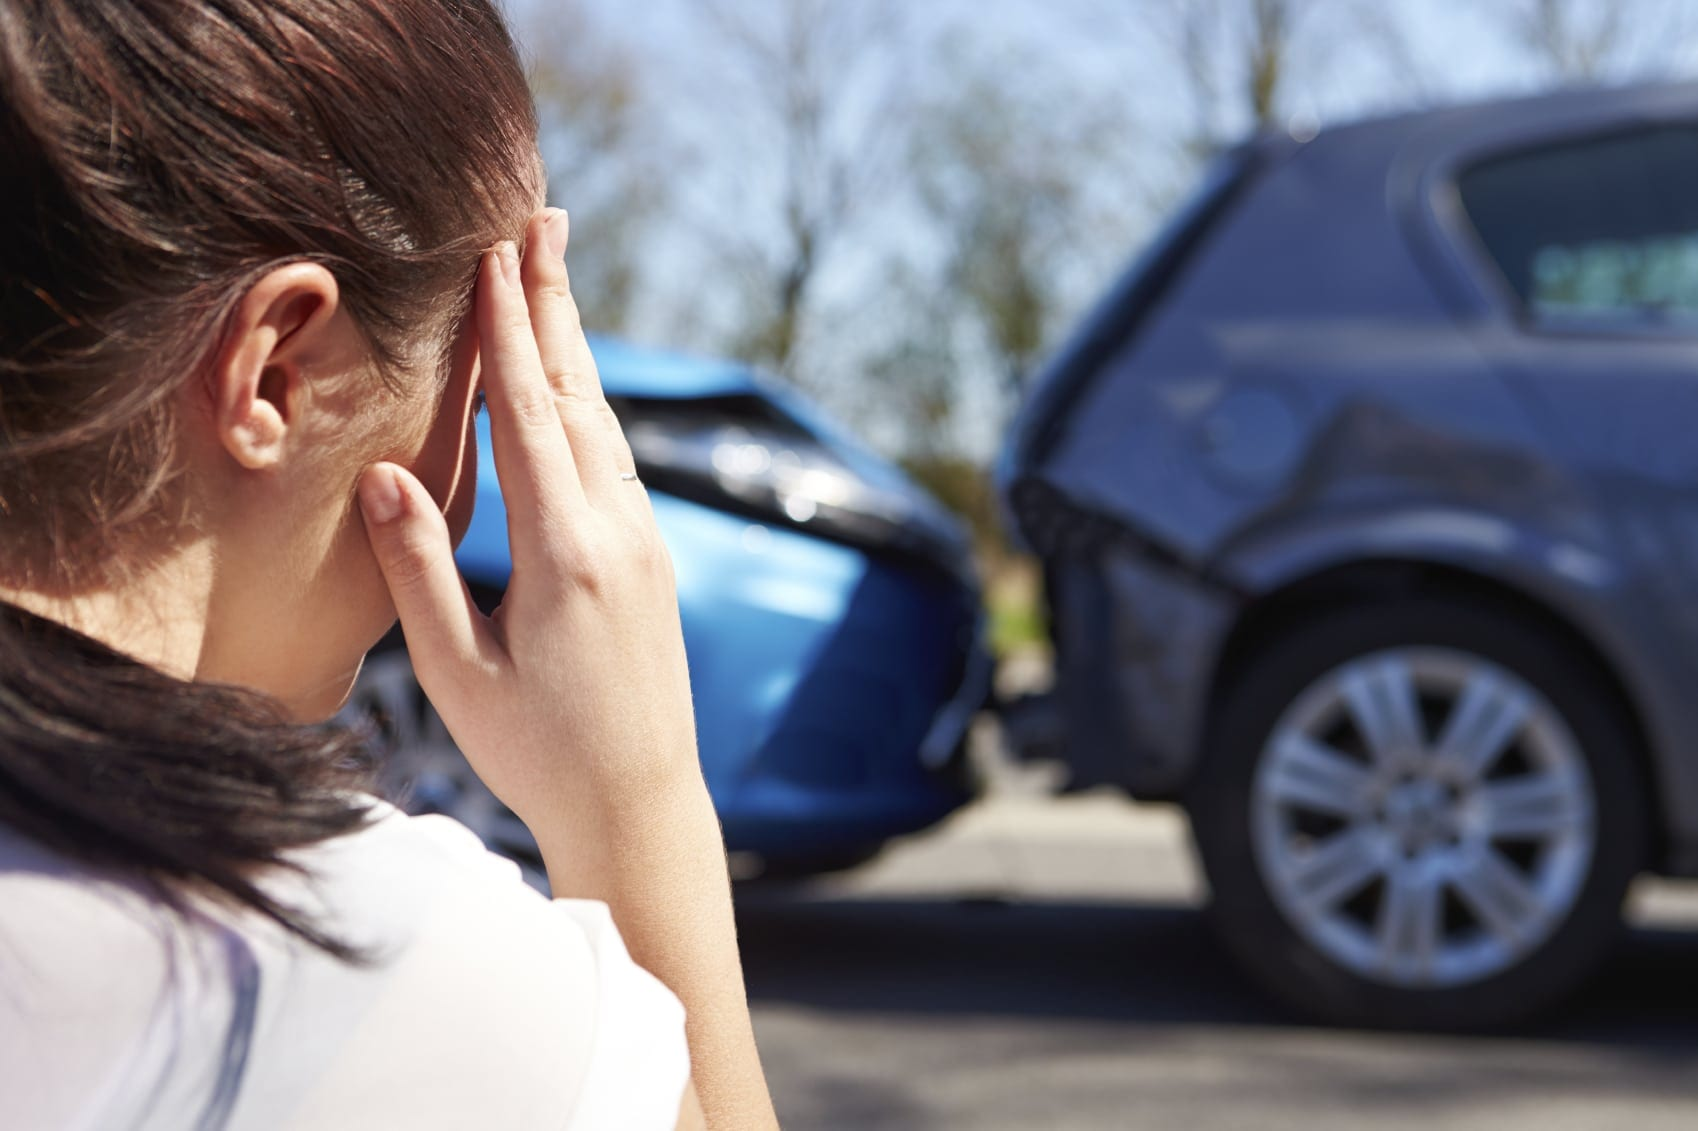 Rear End Car Accident Stock Photo